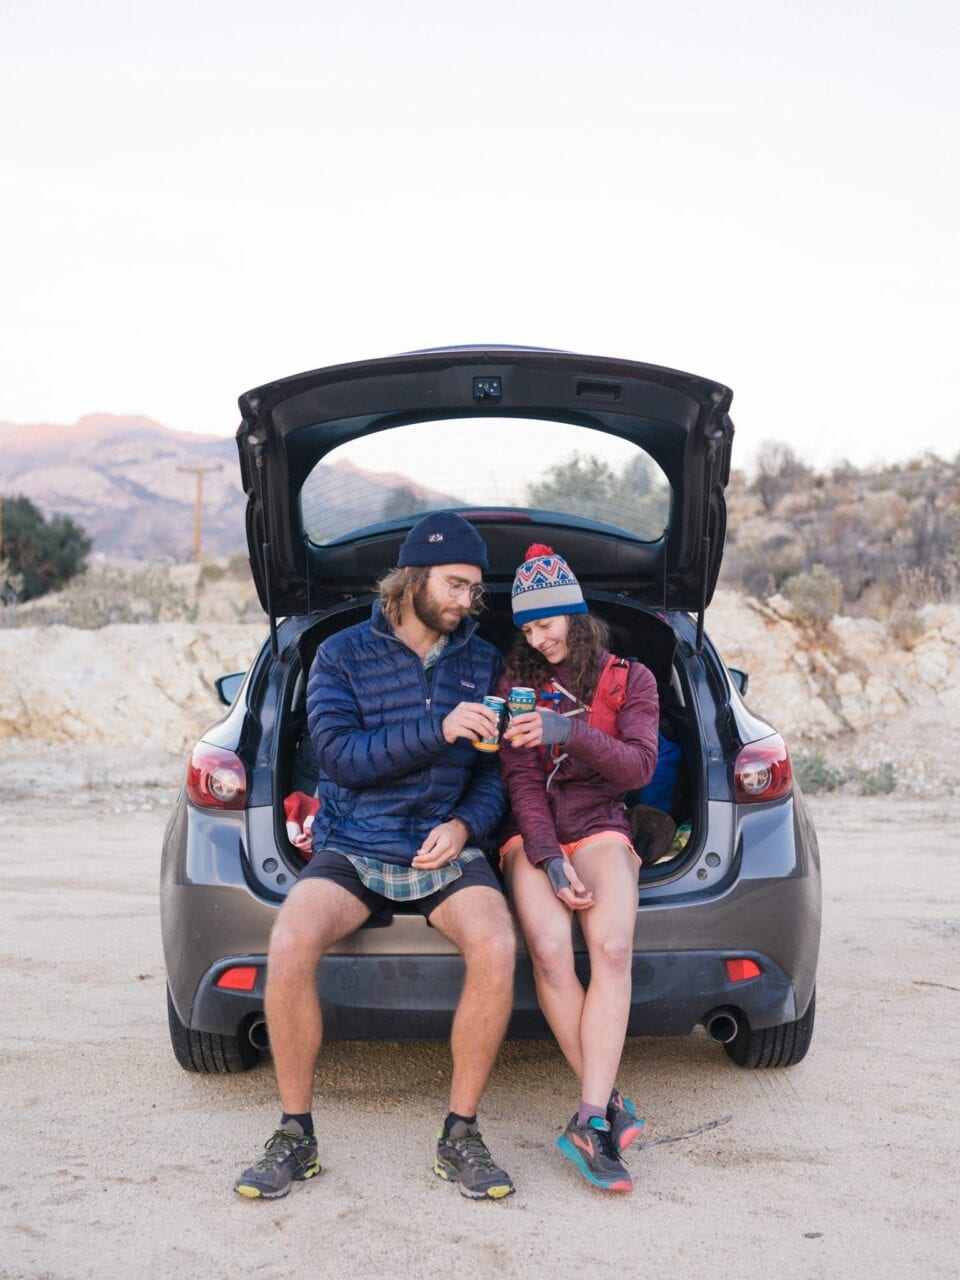 A man and woman sit in the trunk of a car cheers-ing their beers.